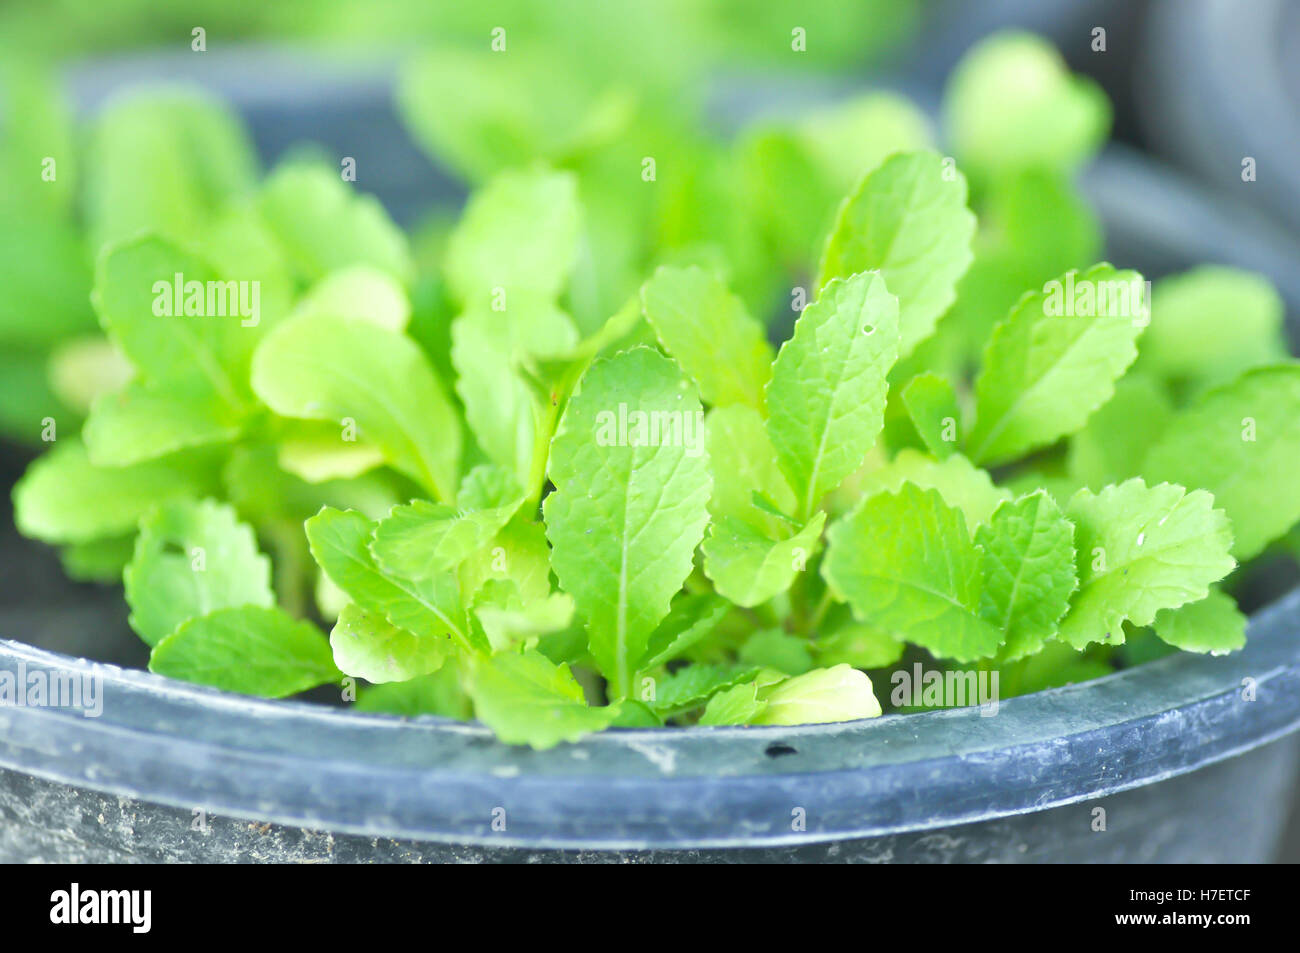 Growing lettuce in a pot - Brassica Juncea Plant Lettuce Plant Or Chinese Mustard Plant In The Pot